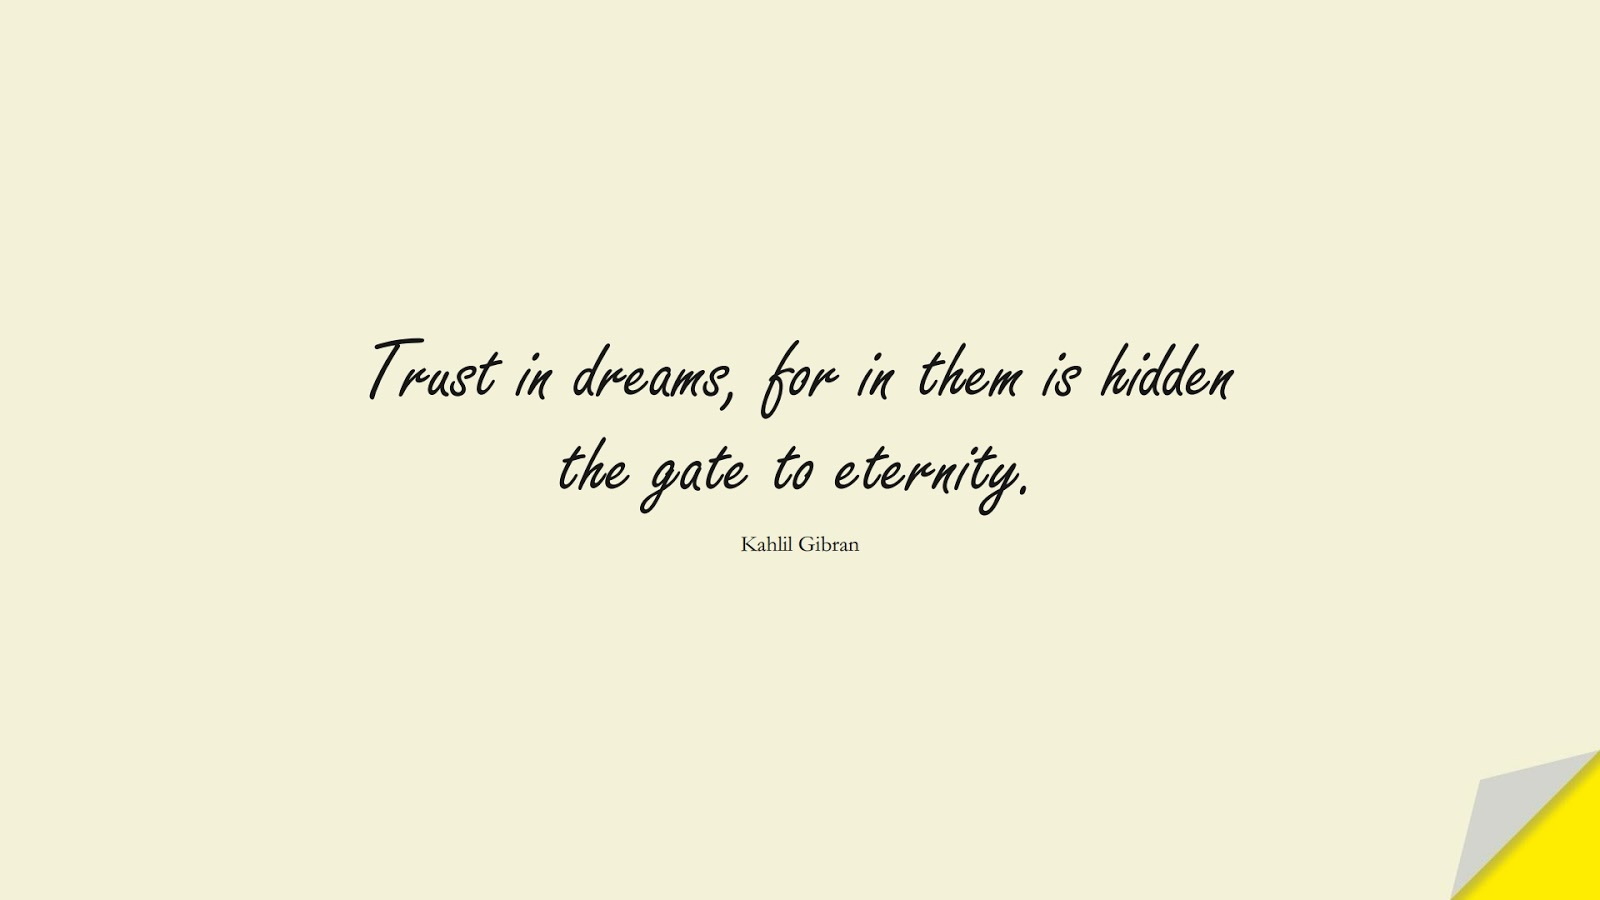 Trust in dreams, for in them is hidden the gate to eternity. (Kahlil Gibran);  #ShortQuotes